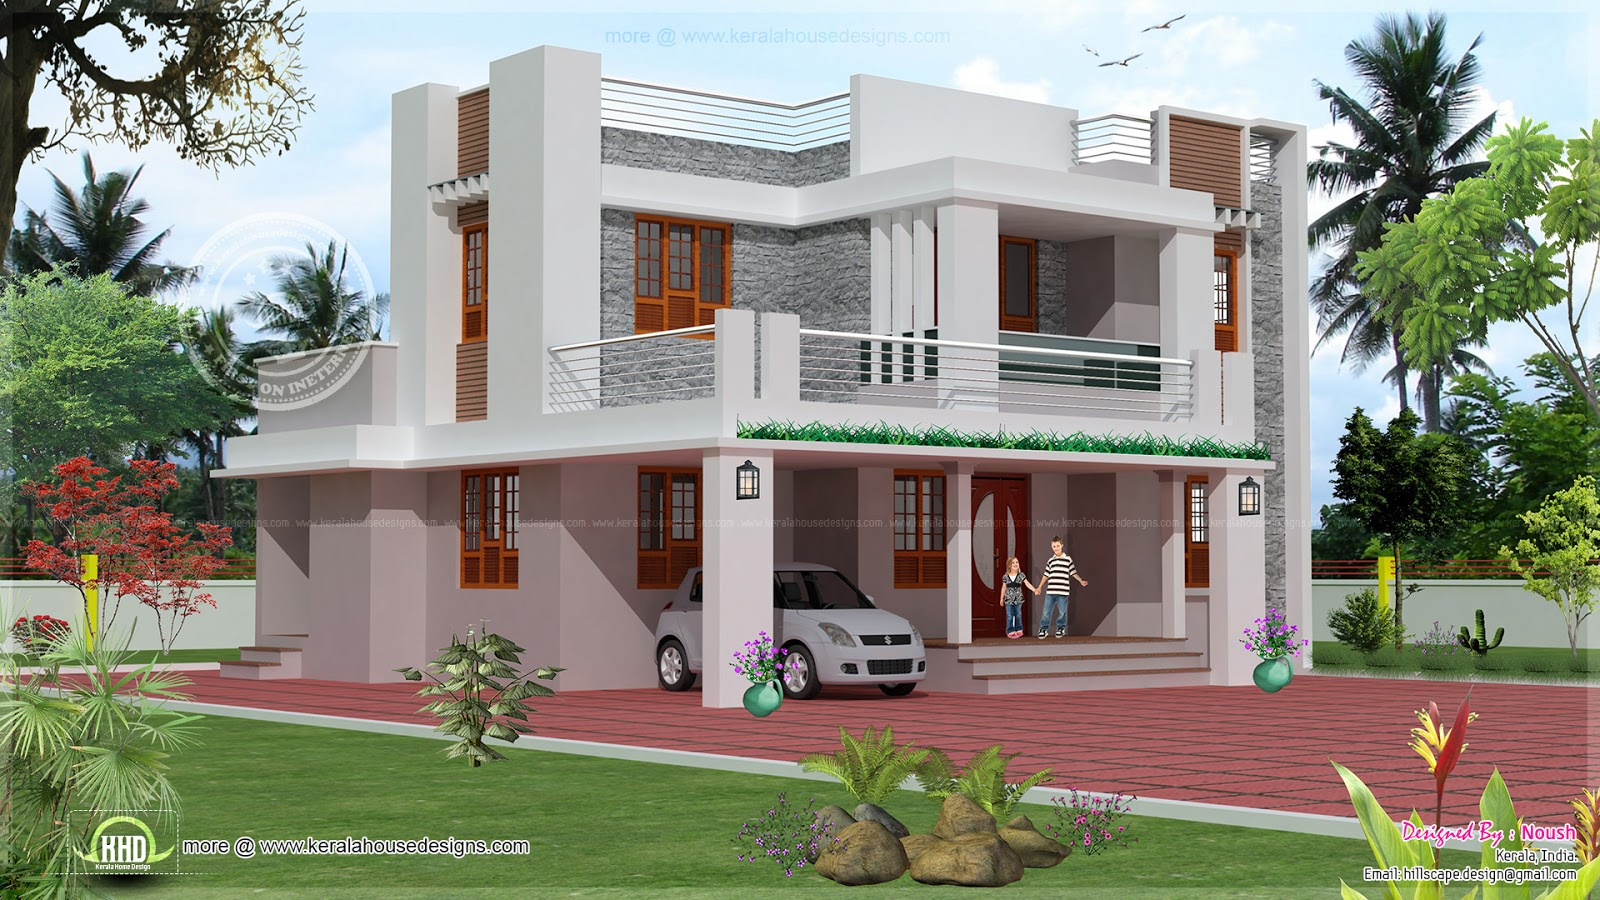 4 bedroom 2 story house exterior design house design plans for Home outside design